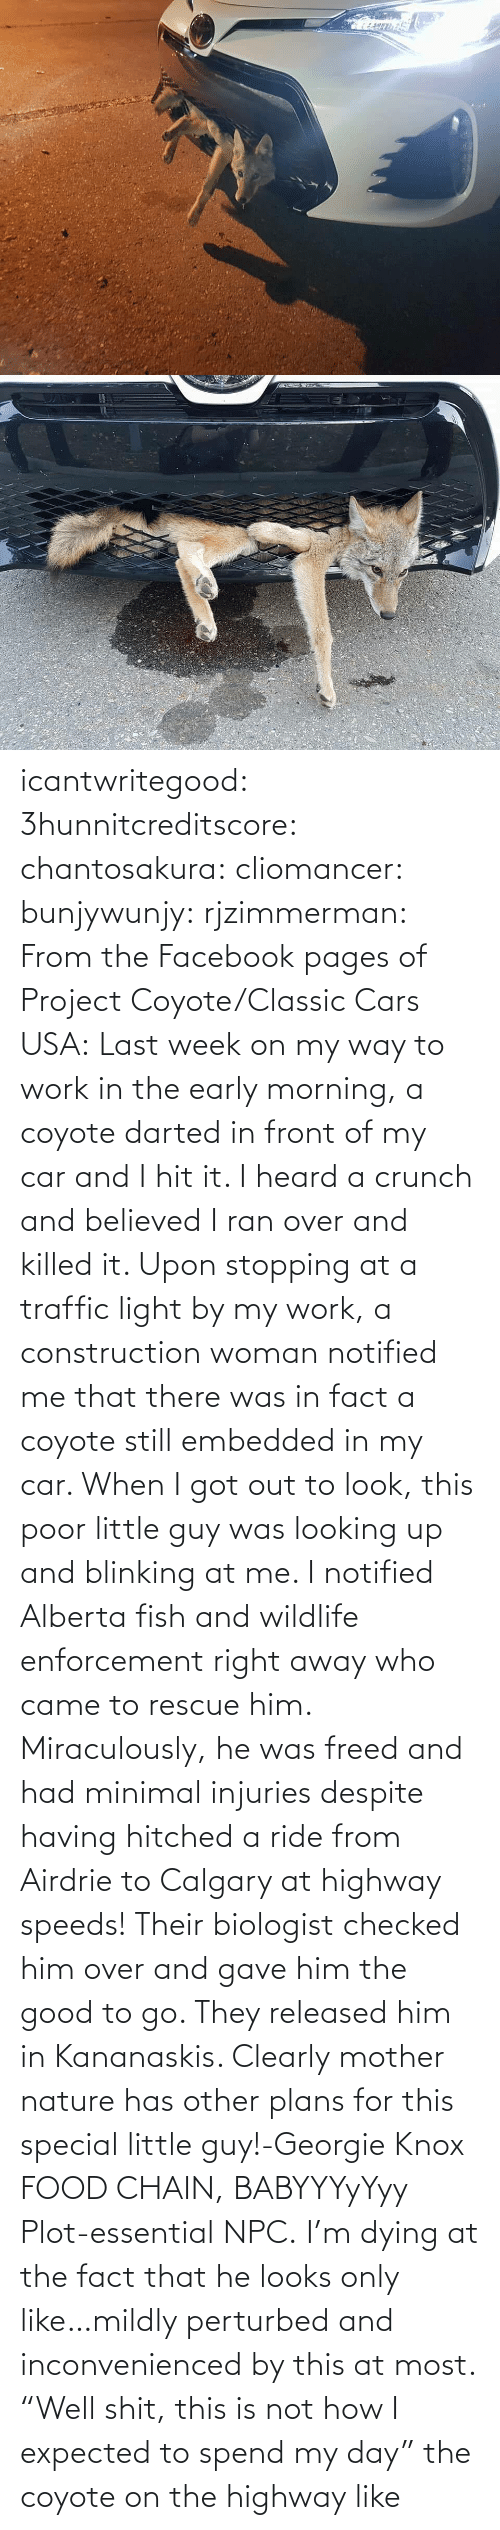 "He Was: icantwritegood: 3hunnitcreditscore:  chantosakura:  cliomancer:  bunjywunjy:  rjzimmerman:  From the Facebook pages of Project Coyote/Classic Cars USA: Last week on my way to work in the early morning, a coyote darted in front of my car and I hit it. I heard a crunch and believed I ran over and killed it. Upon stopping at a traffic light by my work, a construction woman notified me that there was in fact a coyote still embedded in my car. When I got out to look, this poor little guy was looking up and blinking at me. I notified Alberta fish and wildlife enforcement right away who came to rescue him. Miraculously, he was freed and had minimal injuries despite having hitched a ride from Airdrie to Calgary at highway speeds! Their biologist checked him over and gave him the good to go. They released him in Kananaskis. Clearly mother nature has other plans for this special little guy!-Georgie Knox  FOOD CHAIN, BABYYYyYyy  Plot-essential NPC.   I'm dying at the fact that he looks only like…mildly perturbed and inconvenienced by this at most.    ""Well shit, this is not how I expected to spend my day""  the coyote on the highway like"